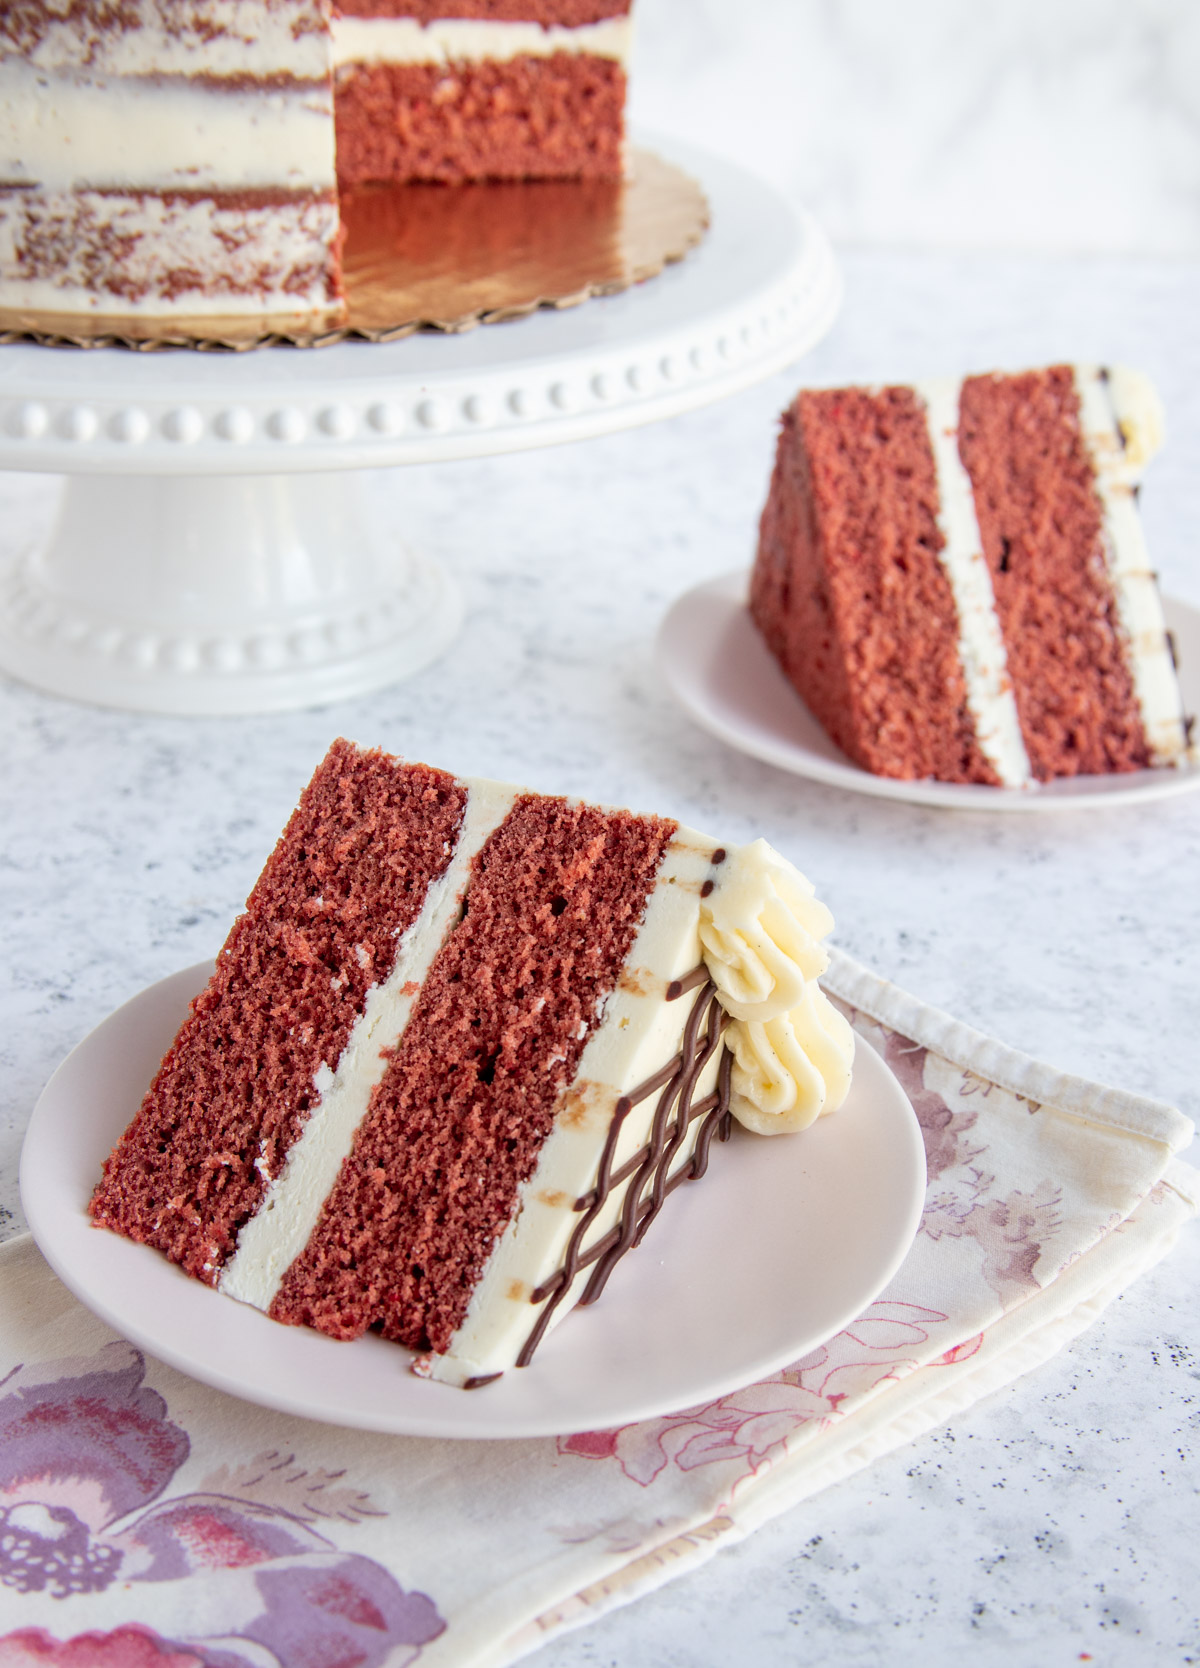 Red Velvet Cake with Mascarpone Buttercream - two slices on two small plates and the main cake in the background on a cake plate.